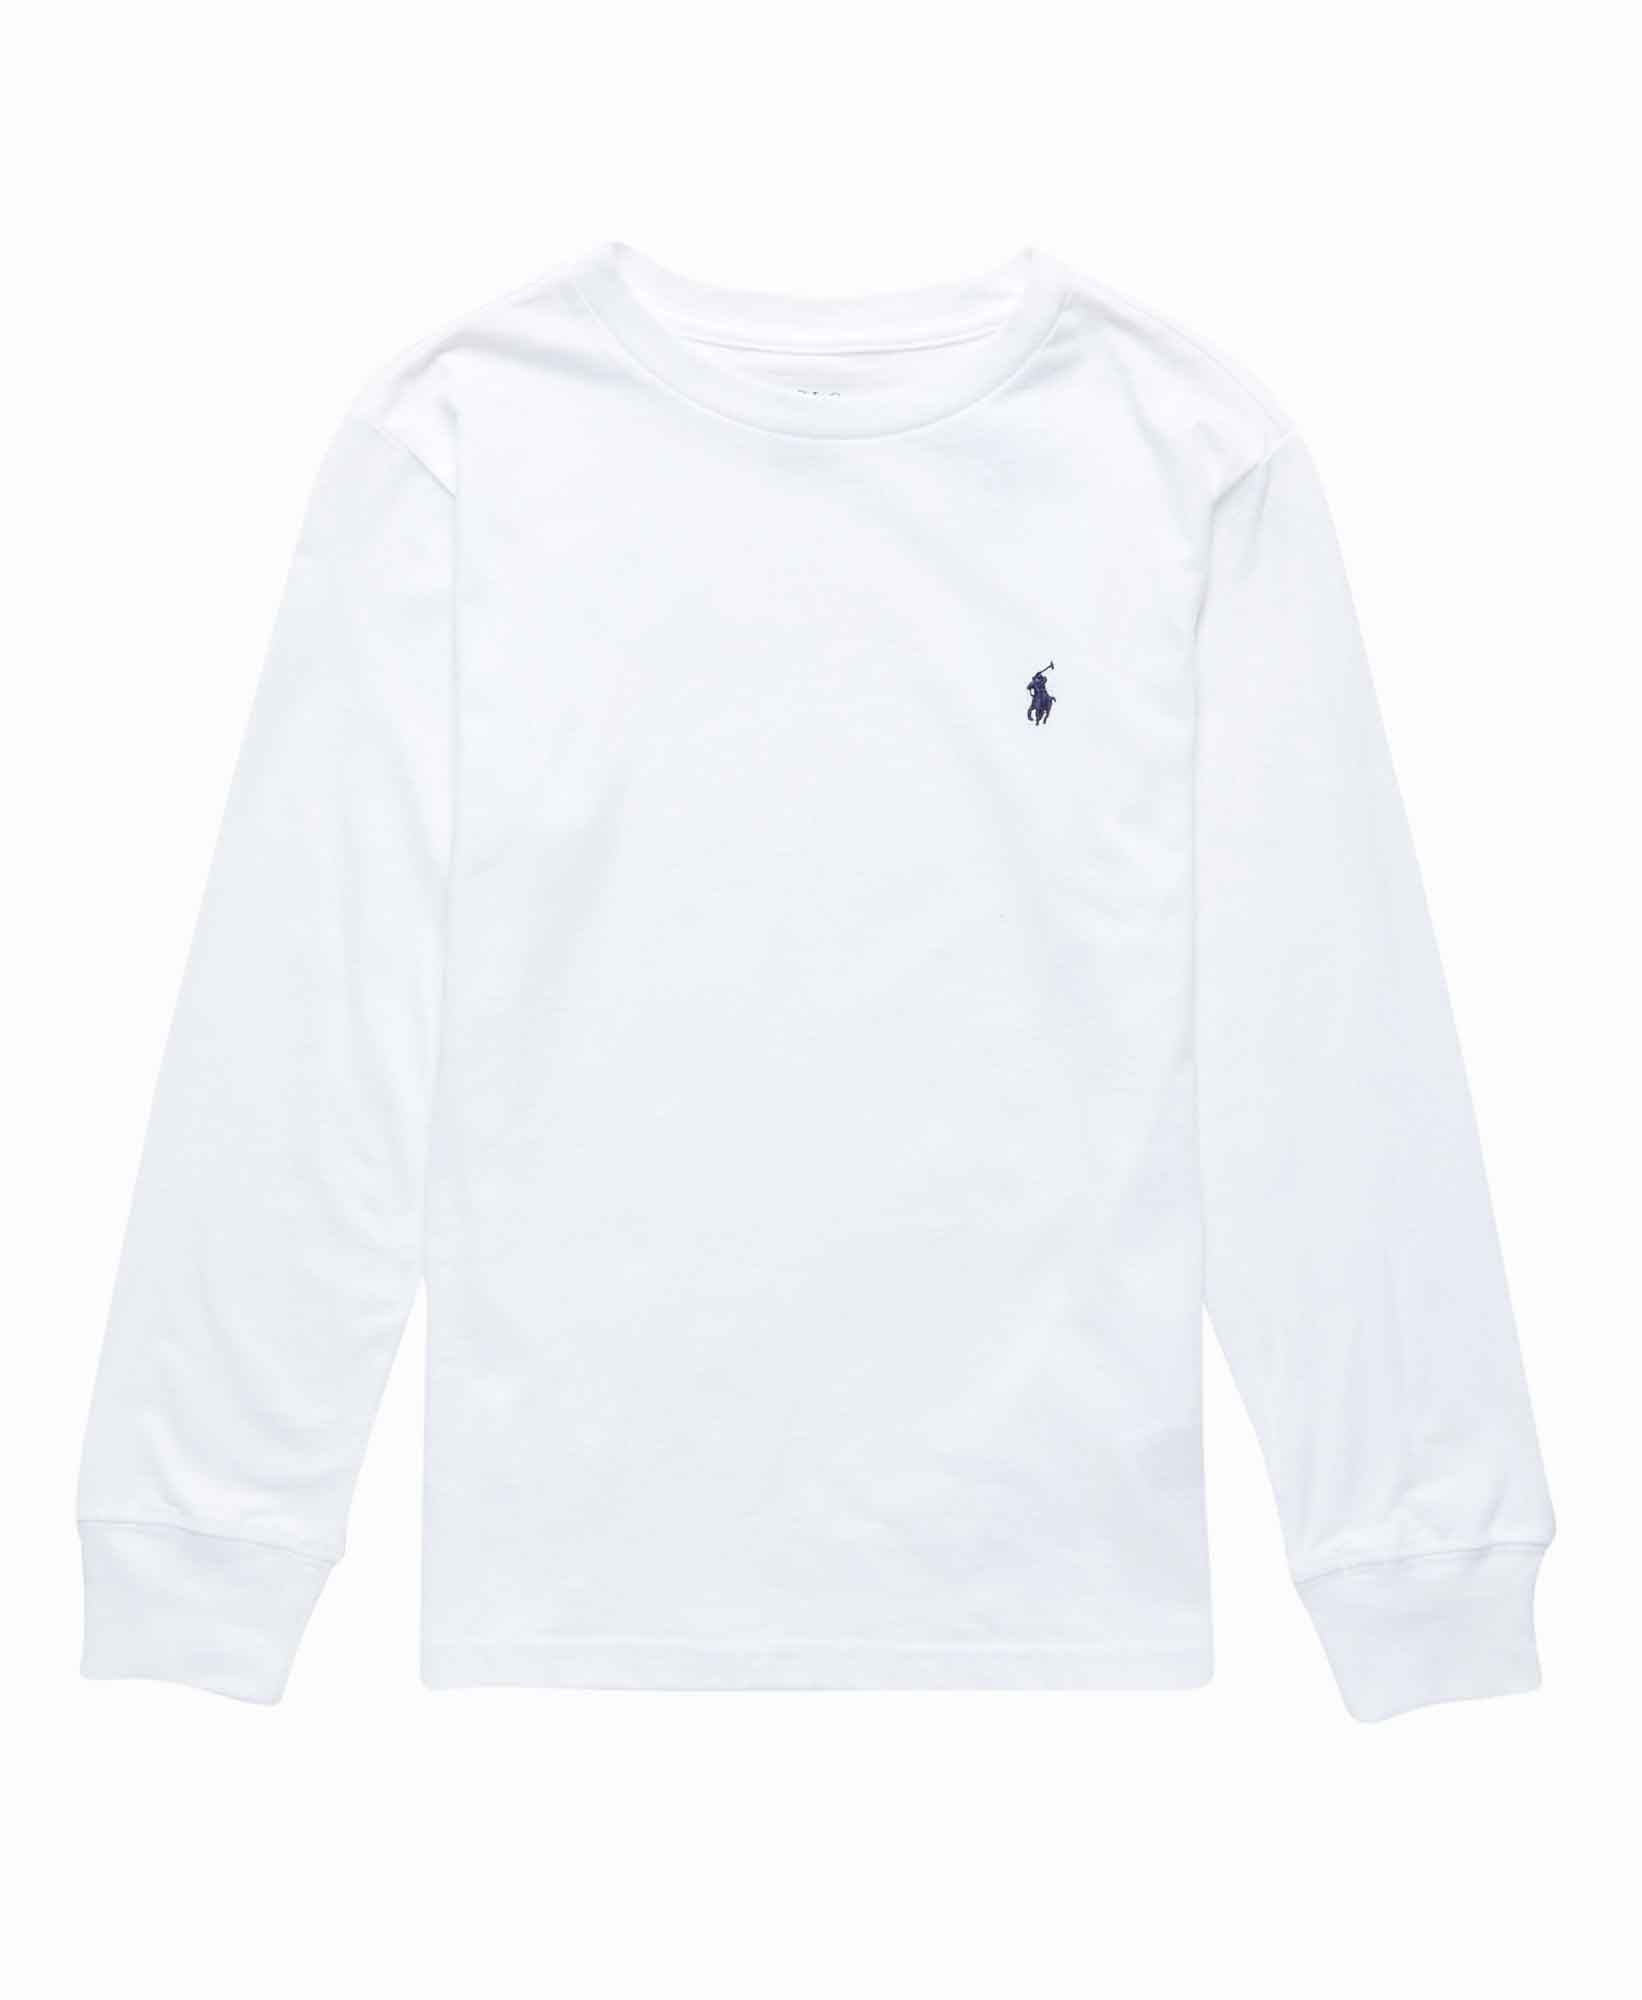 Polo Ralph Lauren Jersey Long Sleeve Tee